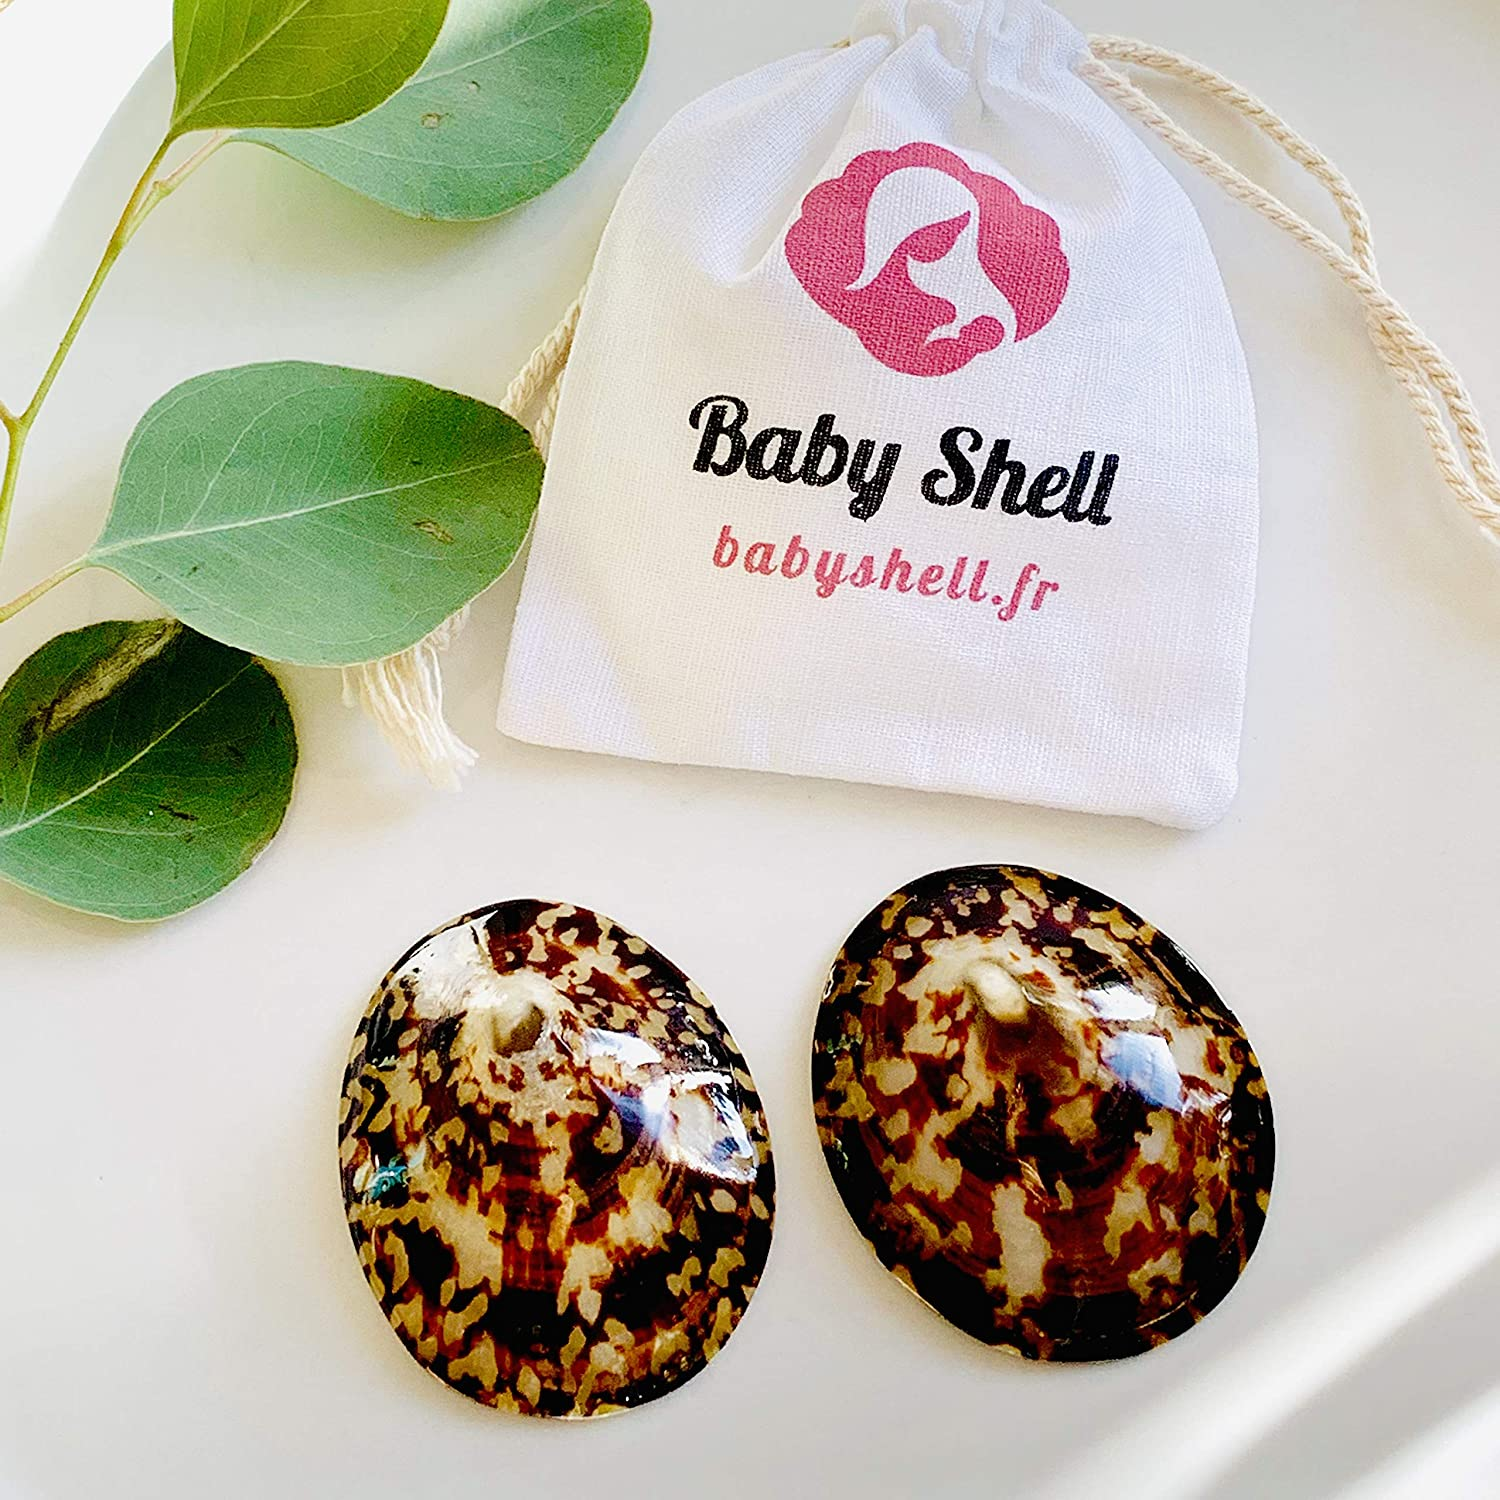 T.Small BABY SHELL Coquillages dallaitement 100/% naturels